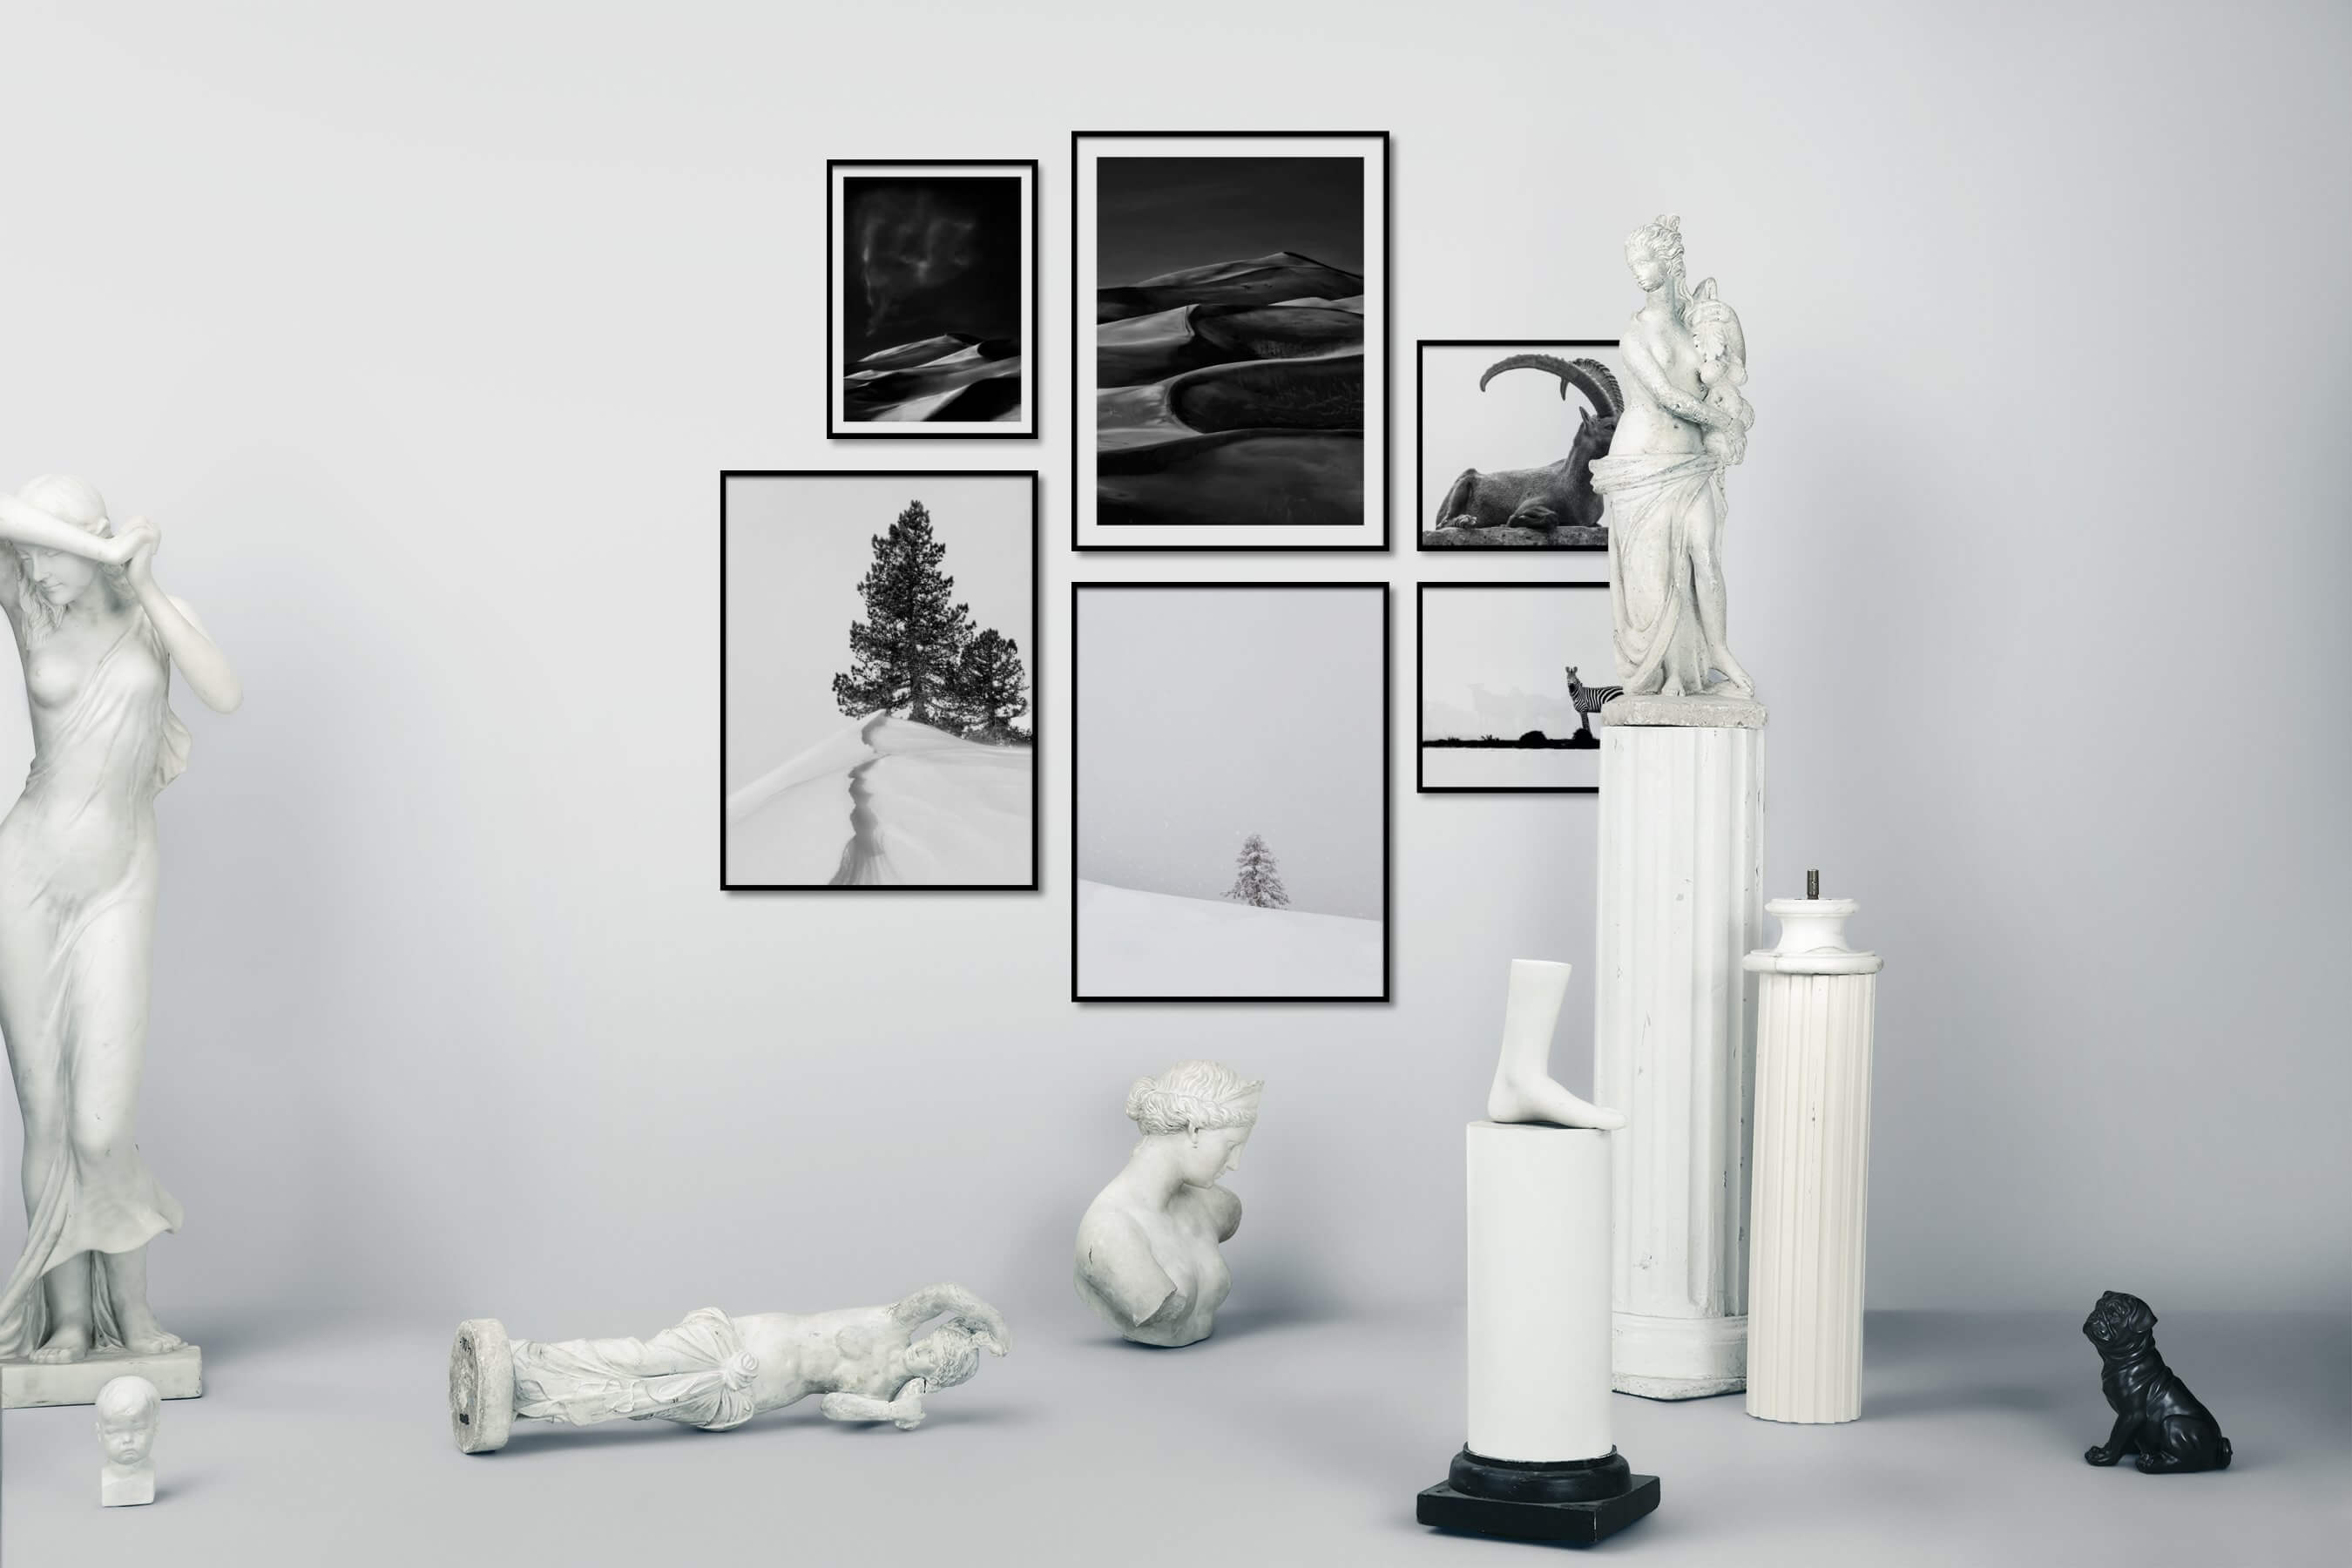 Gallery wall idea with six framed pictures arranged on a wall depicting Black & White, For the Moderate, Nature, For the Minimalist, Bright Tones, and Animals